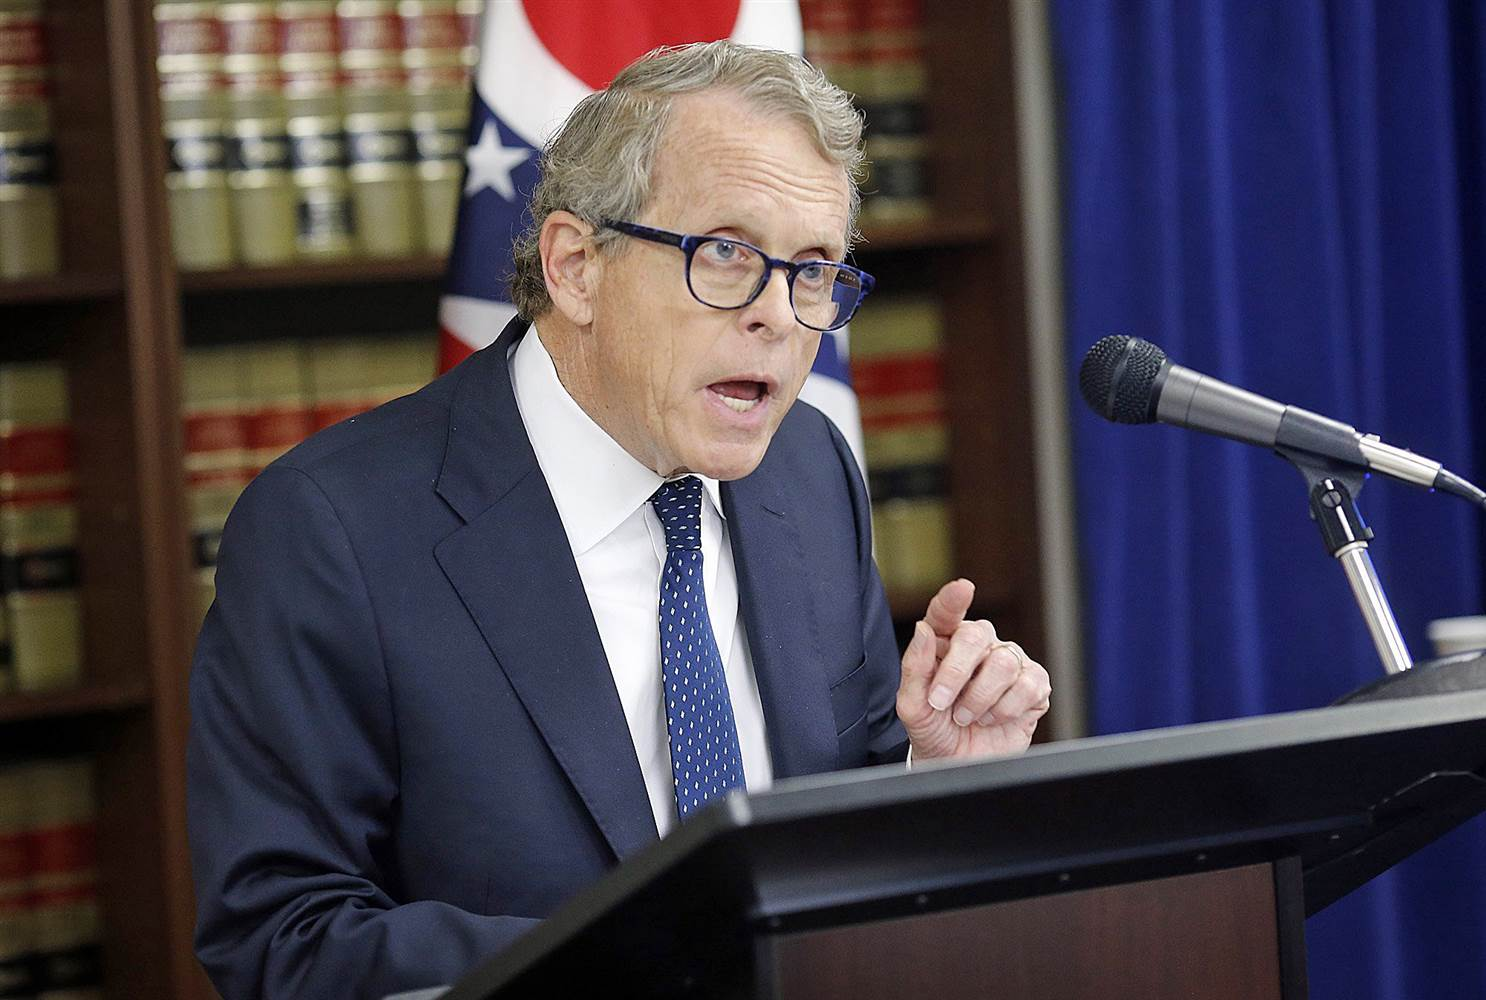 Ohio Attorney General Mike DeWine tells Congress about Ohio's opioid problems